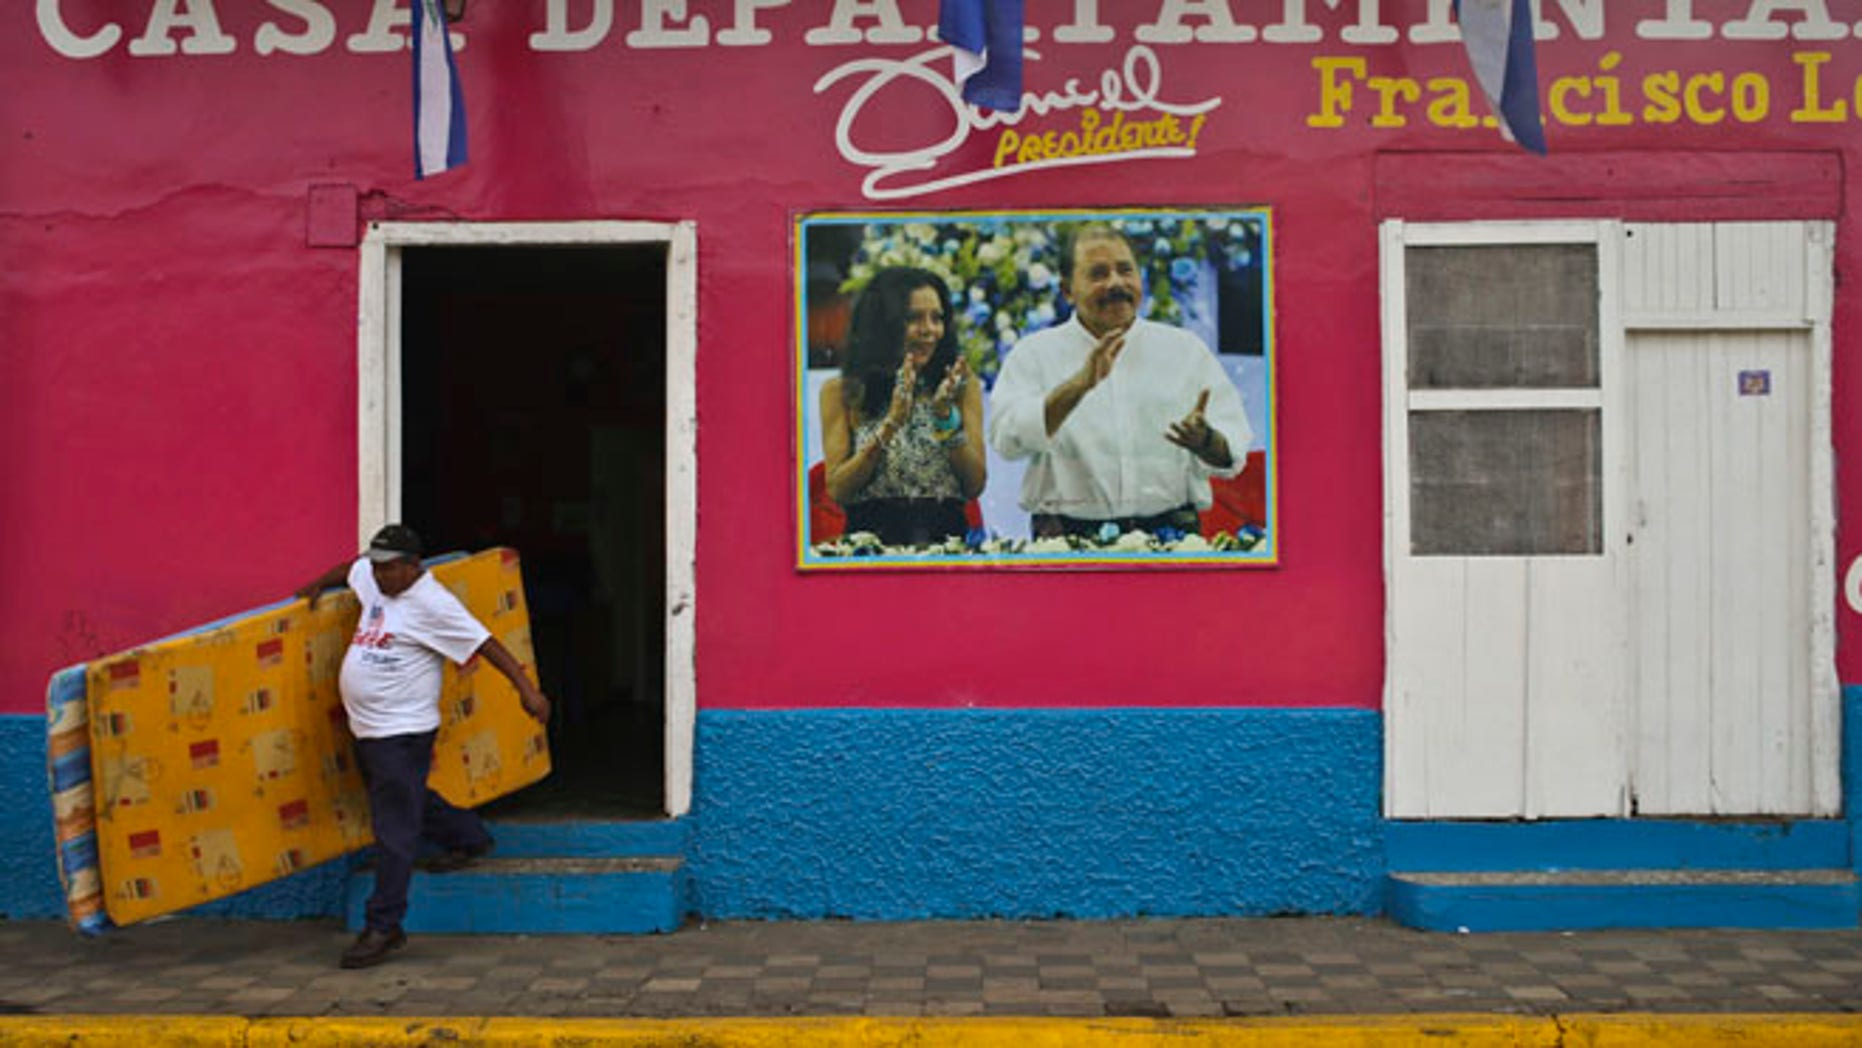 A man leaves the Sandinista National Front Party headquarters, in Masaya, Nicaragua, Saturday, Nov. 5, 2016. Nicaraguan President Daniel Ortega, pictured on the facade of the headquarters with his running mate and wife, Rosario Murillo, appears to have a clear path to a third consecutive term following recent moves that weakened the countryââ¬â¢s opposition. (AP Photo/Esteban Felix)